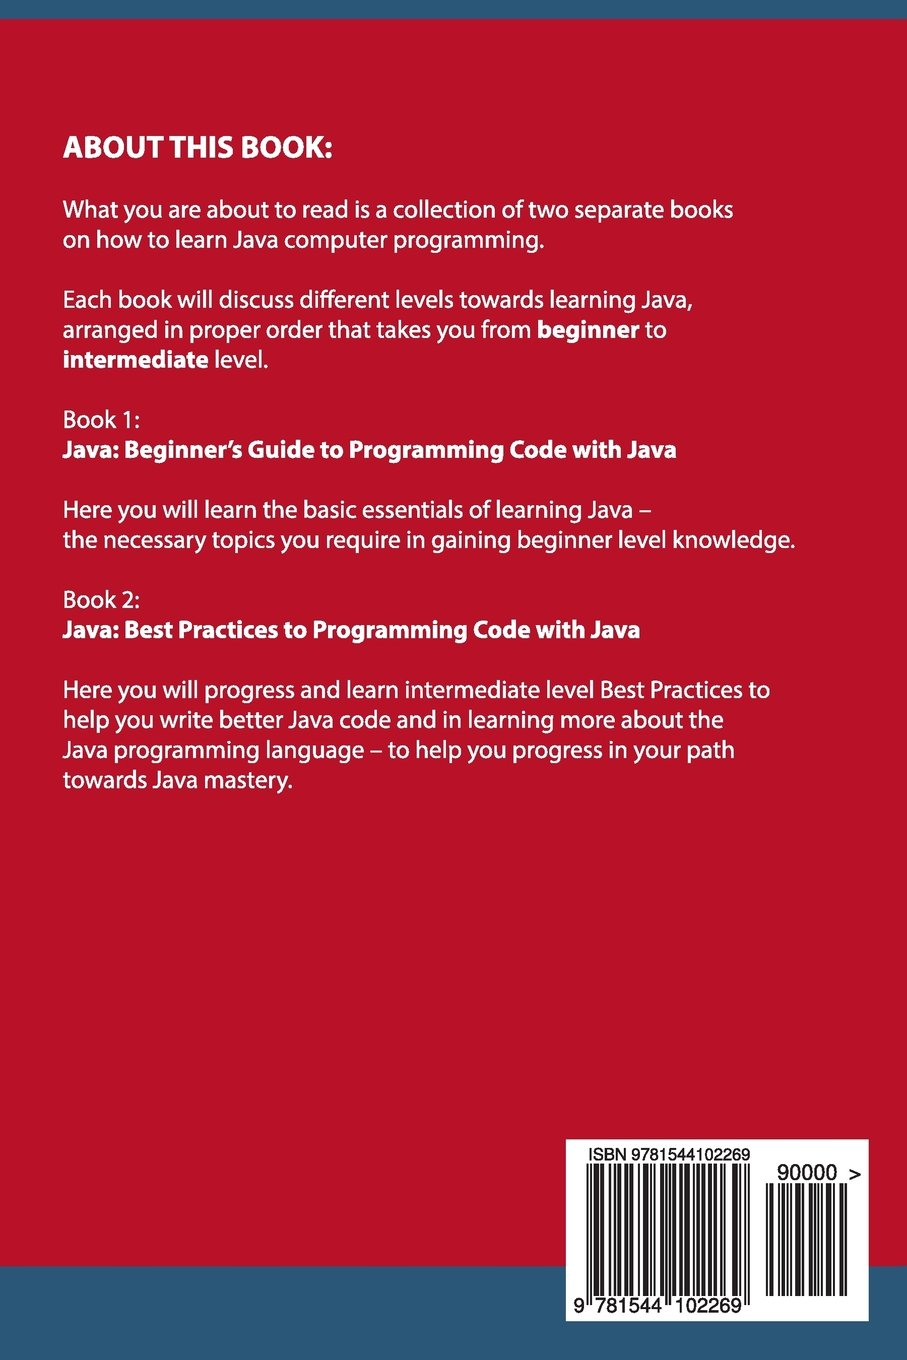 java books in beginner s guide best practices to java 2 books in 1 beginner s guide best practices to programming code java java javascript python code programming language programming